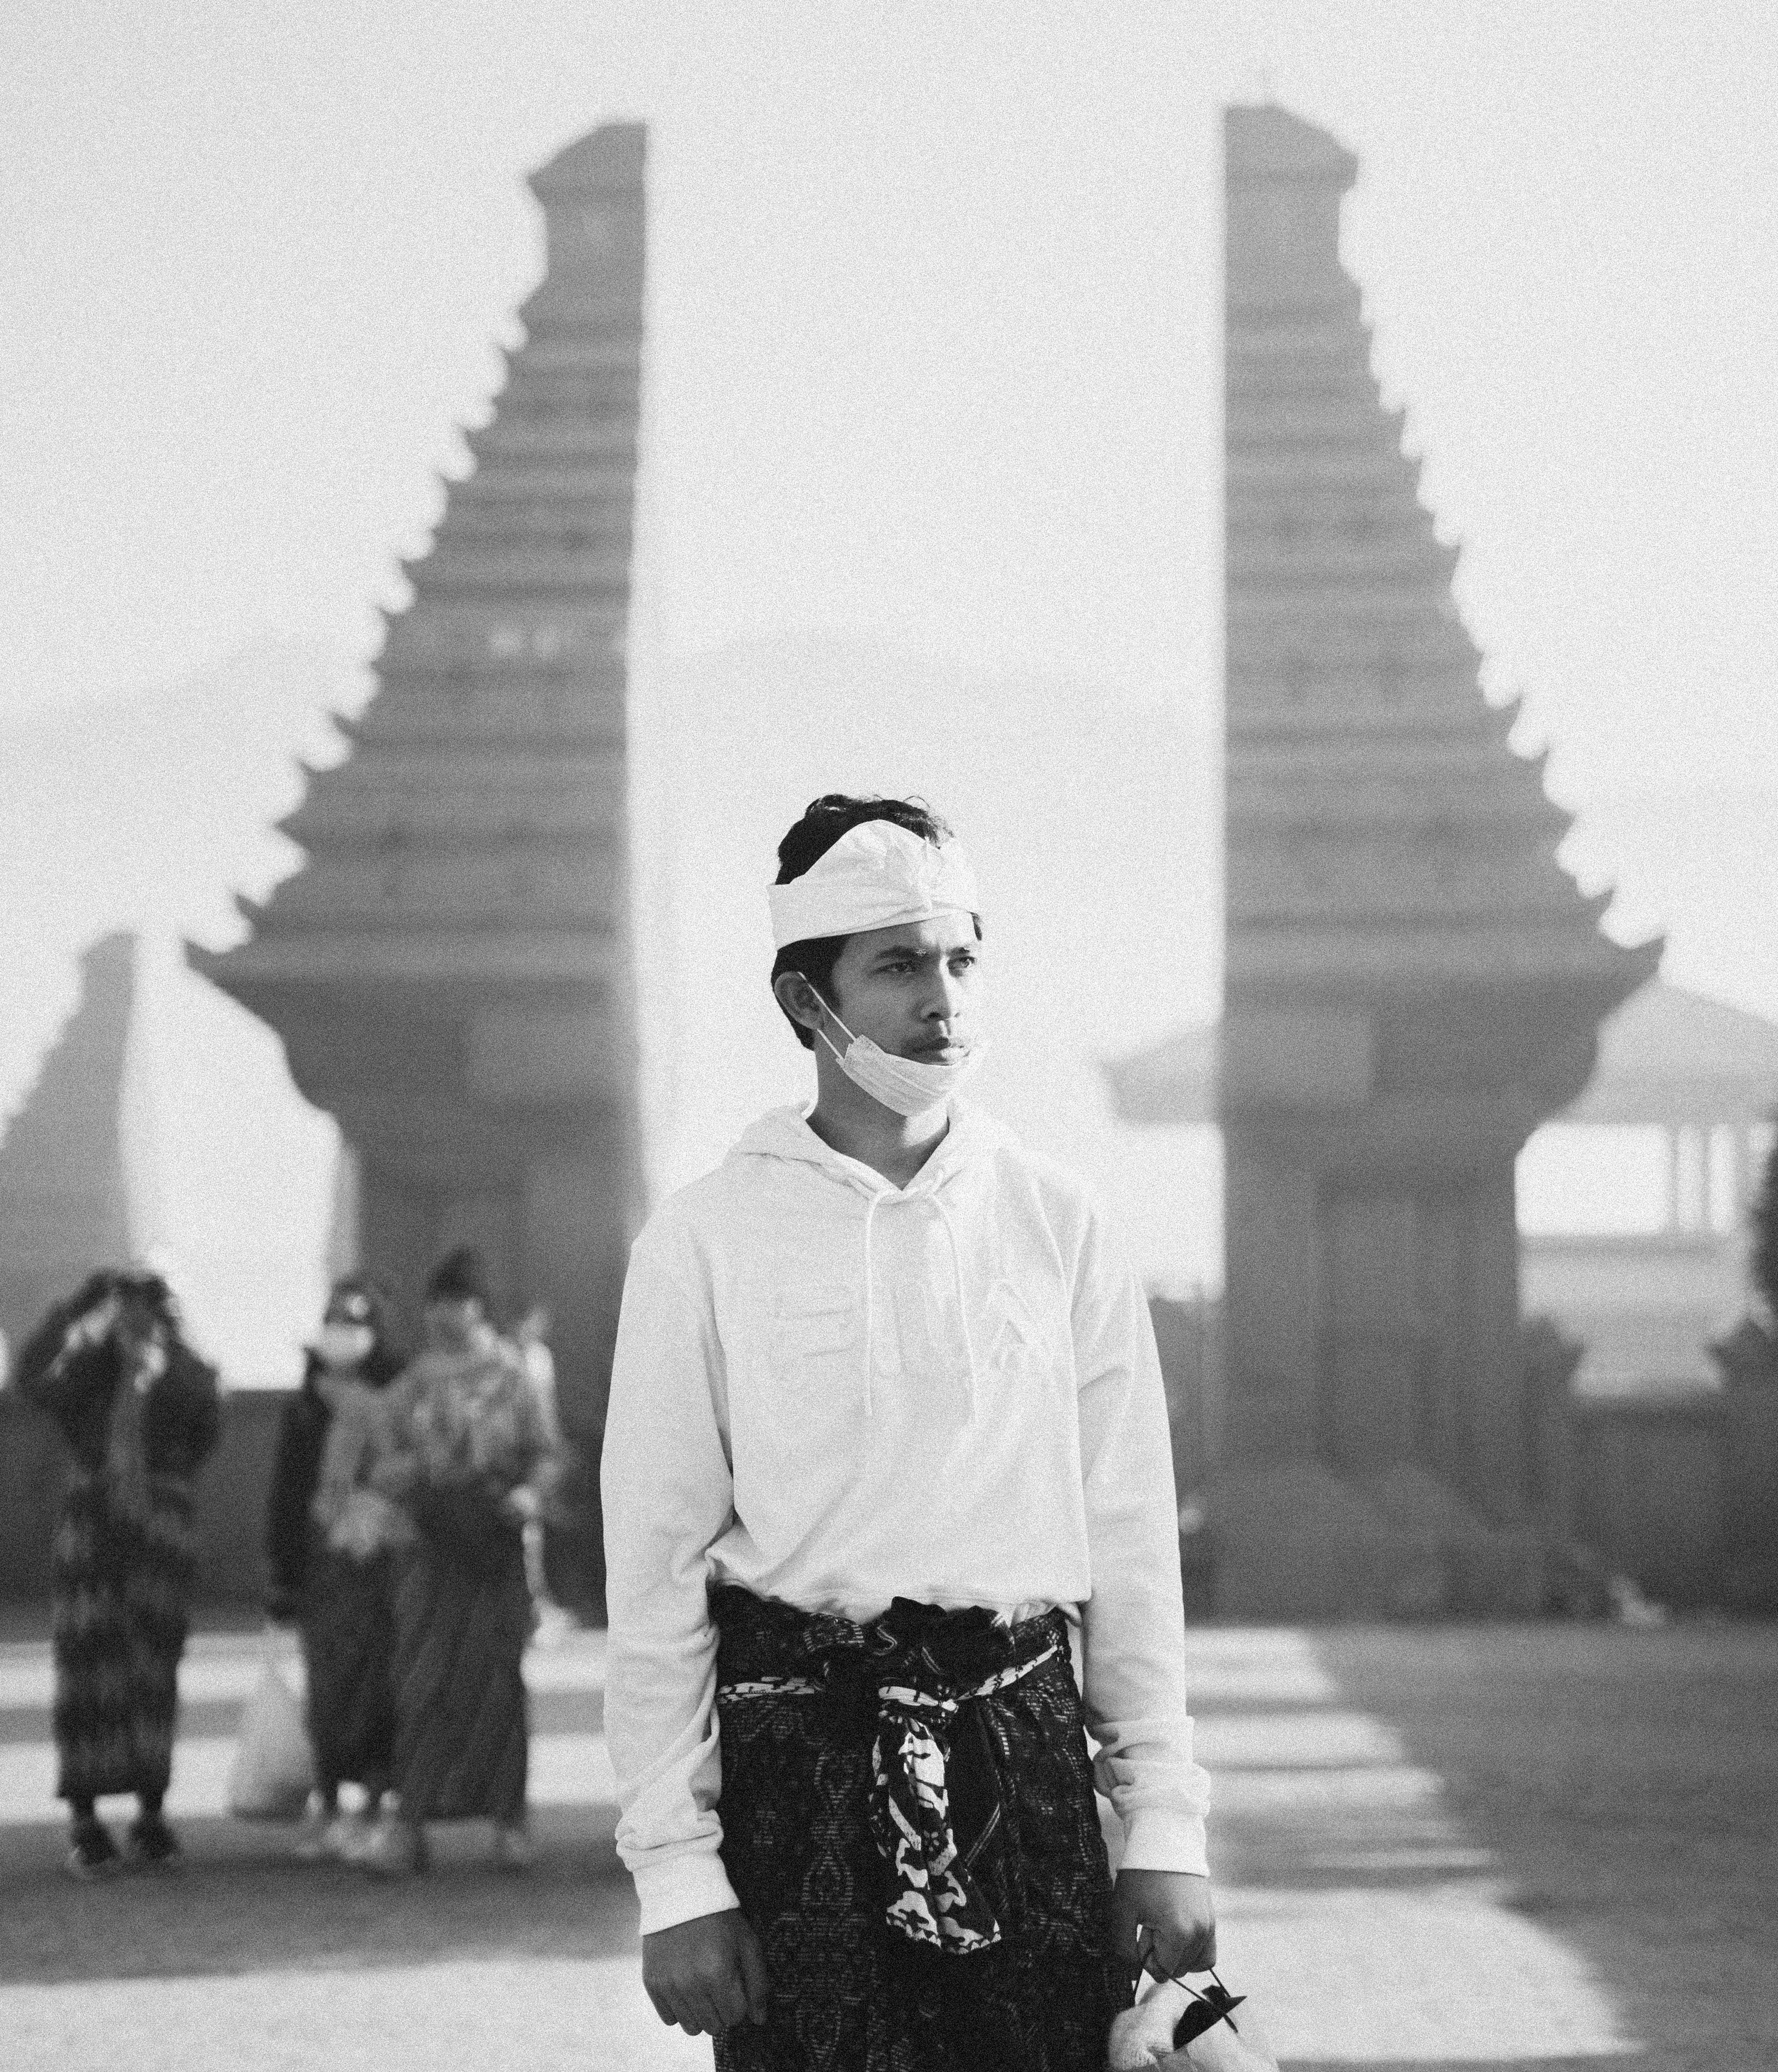 Grayscale Photography of Man Standing in Between of Pillars